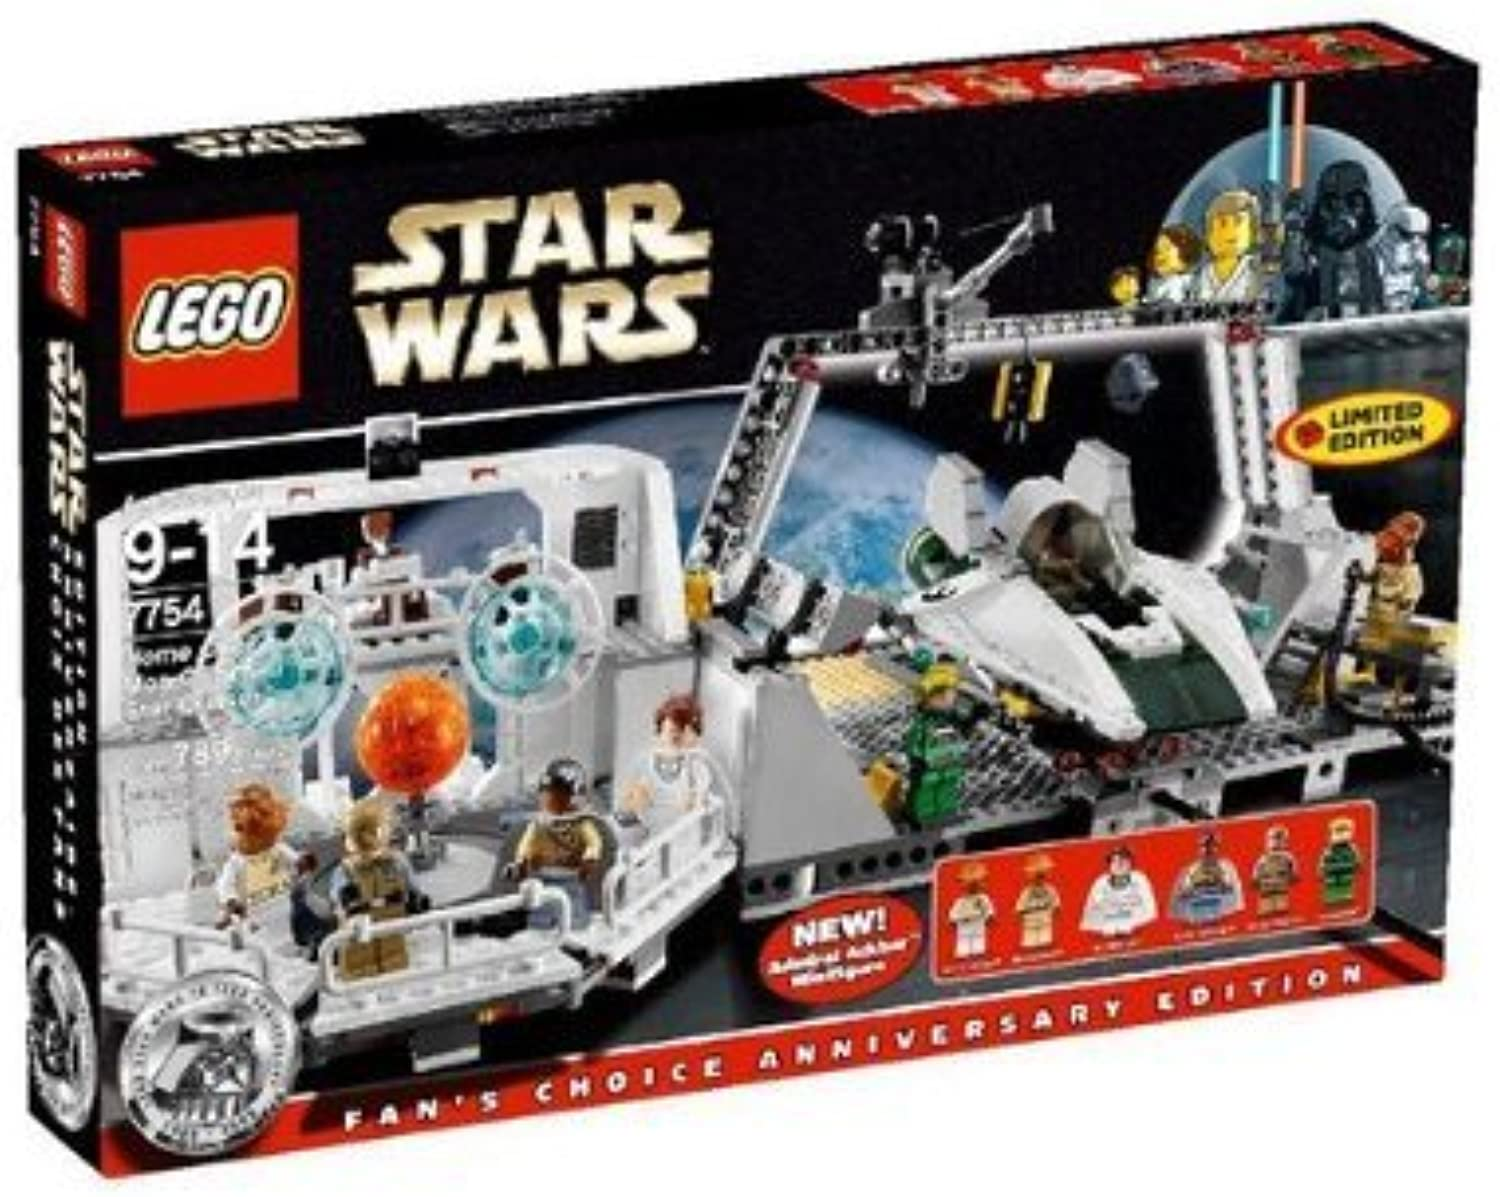 LEGO Star Wars 7754 Home One Mon Calamari Star Cruiser